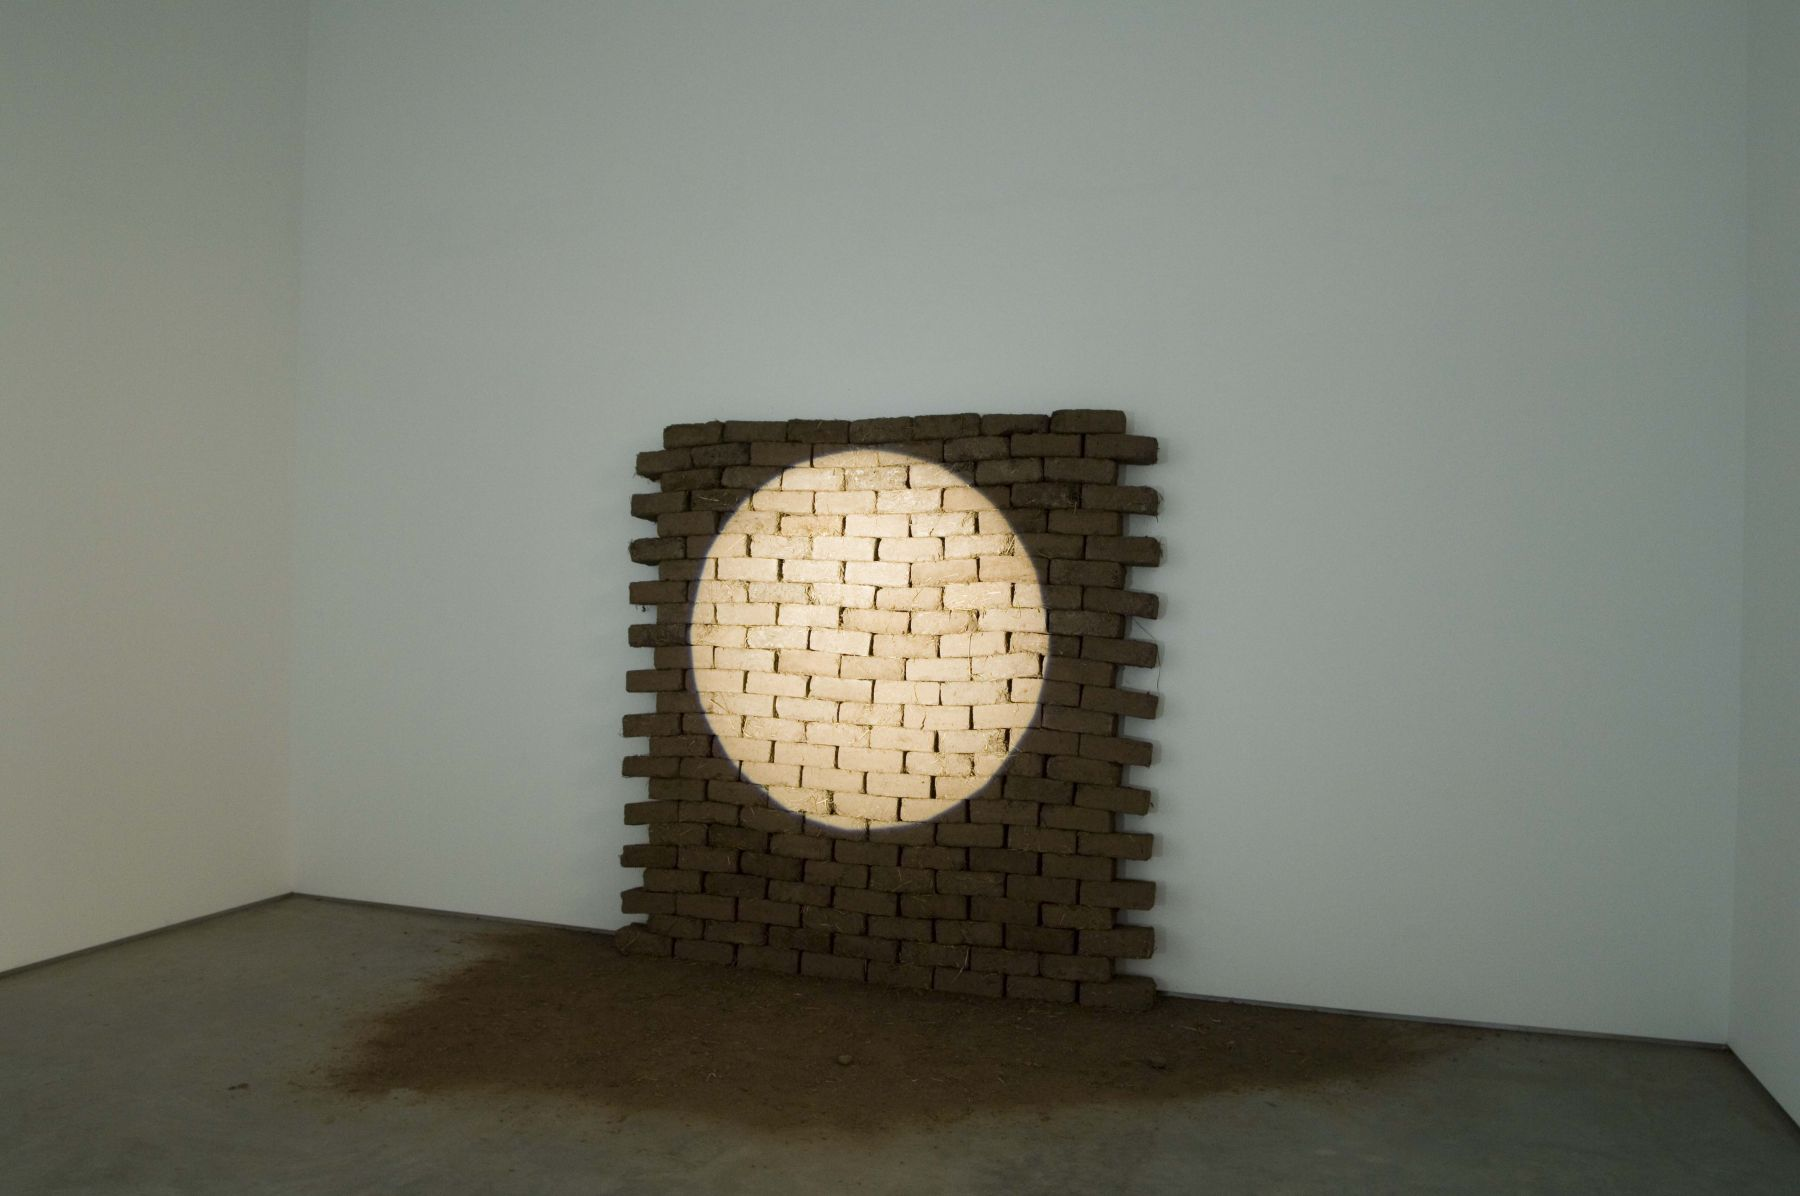 installation with bricks highlighted by a spotlight by christ moukarbel